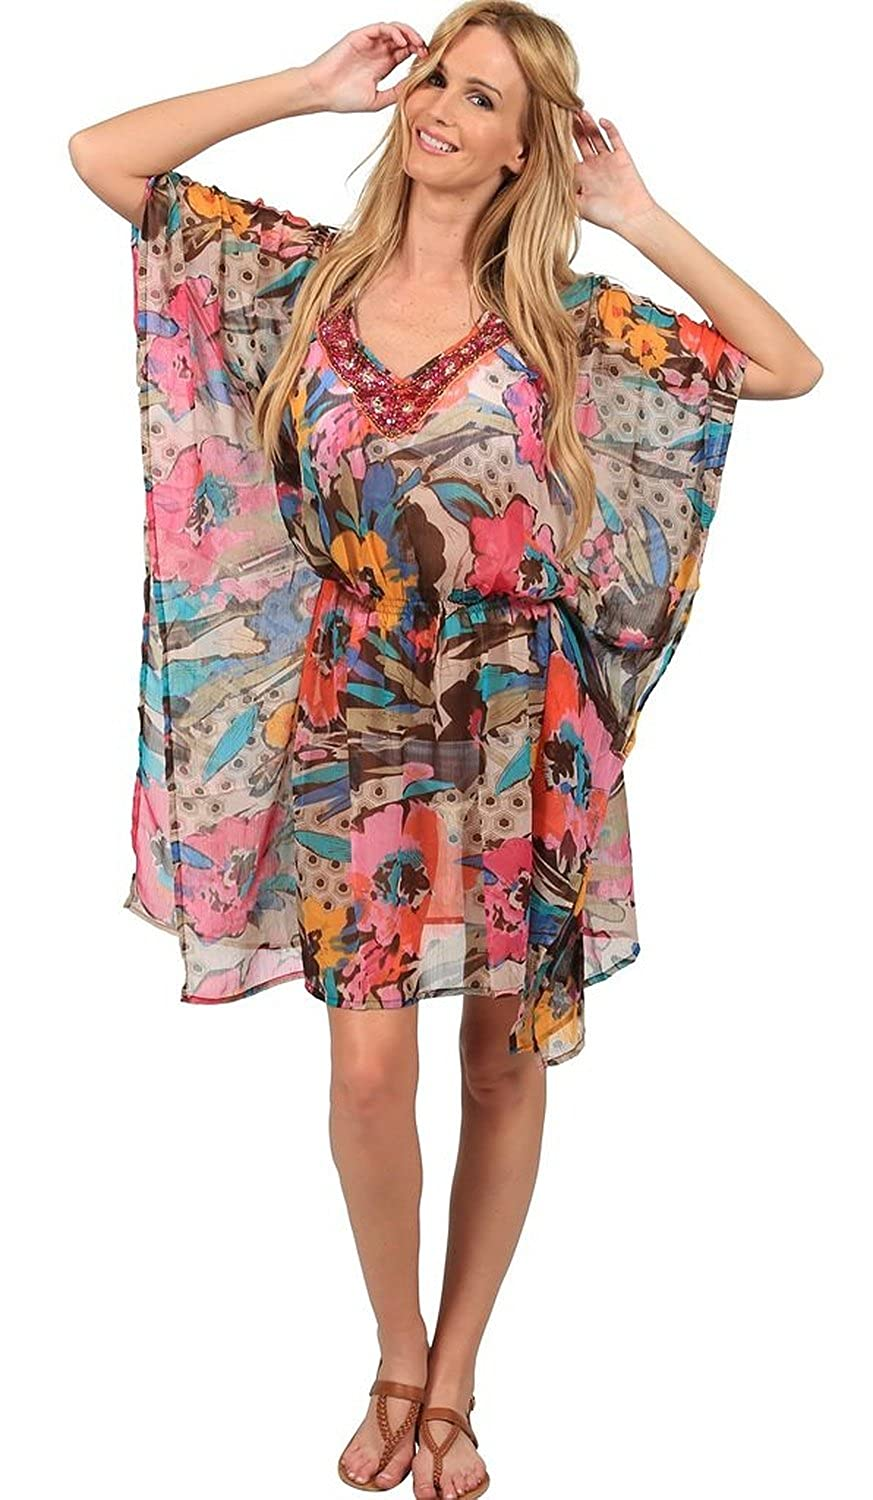 Ingear Embellished Beaded Poncho Cover Up IST432R-AST-OS